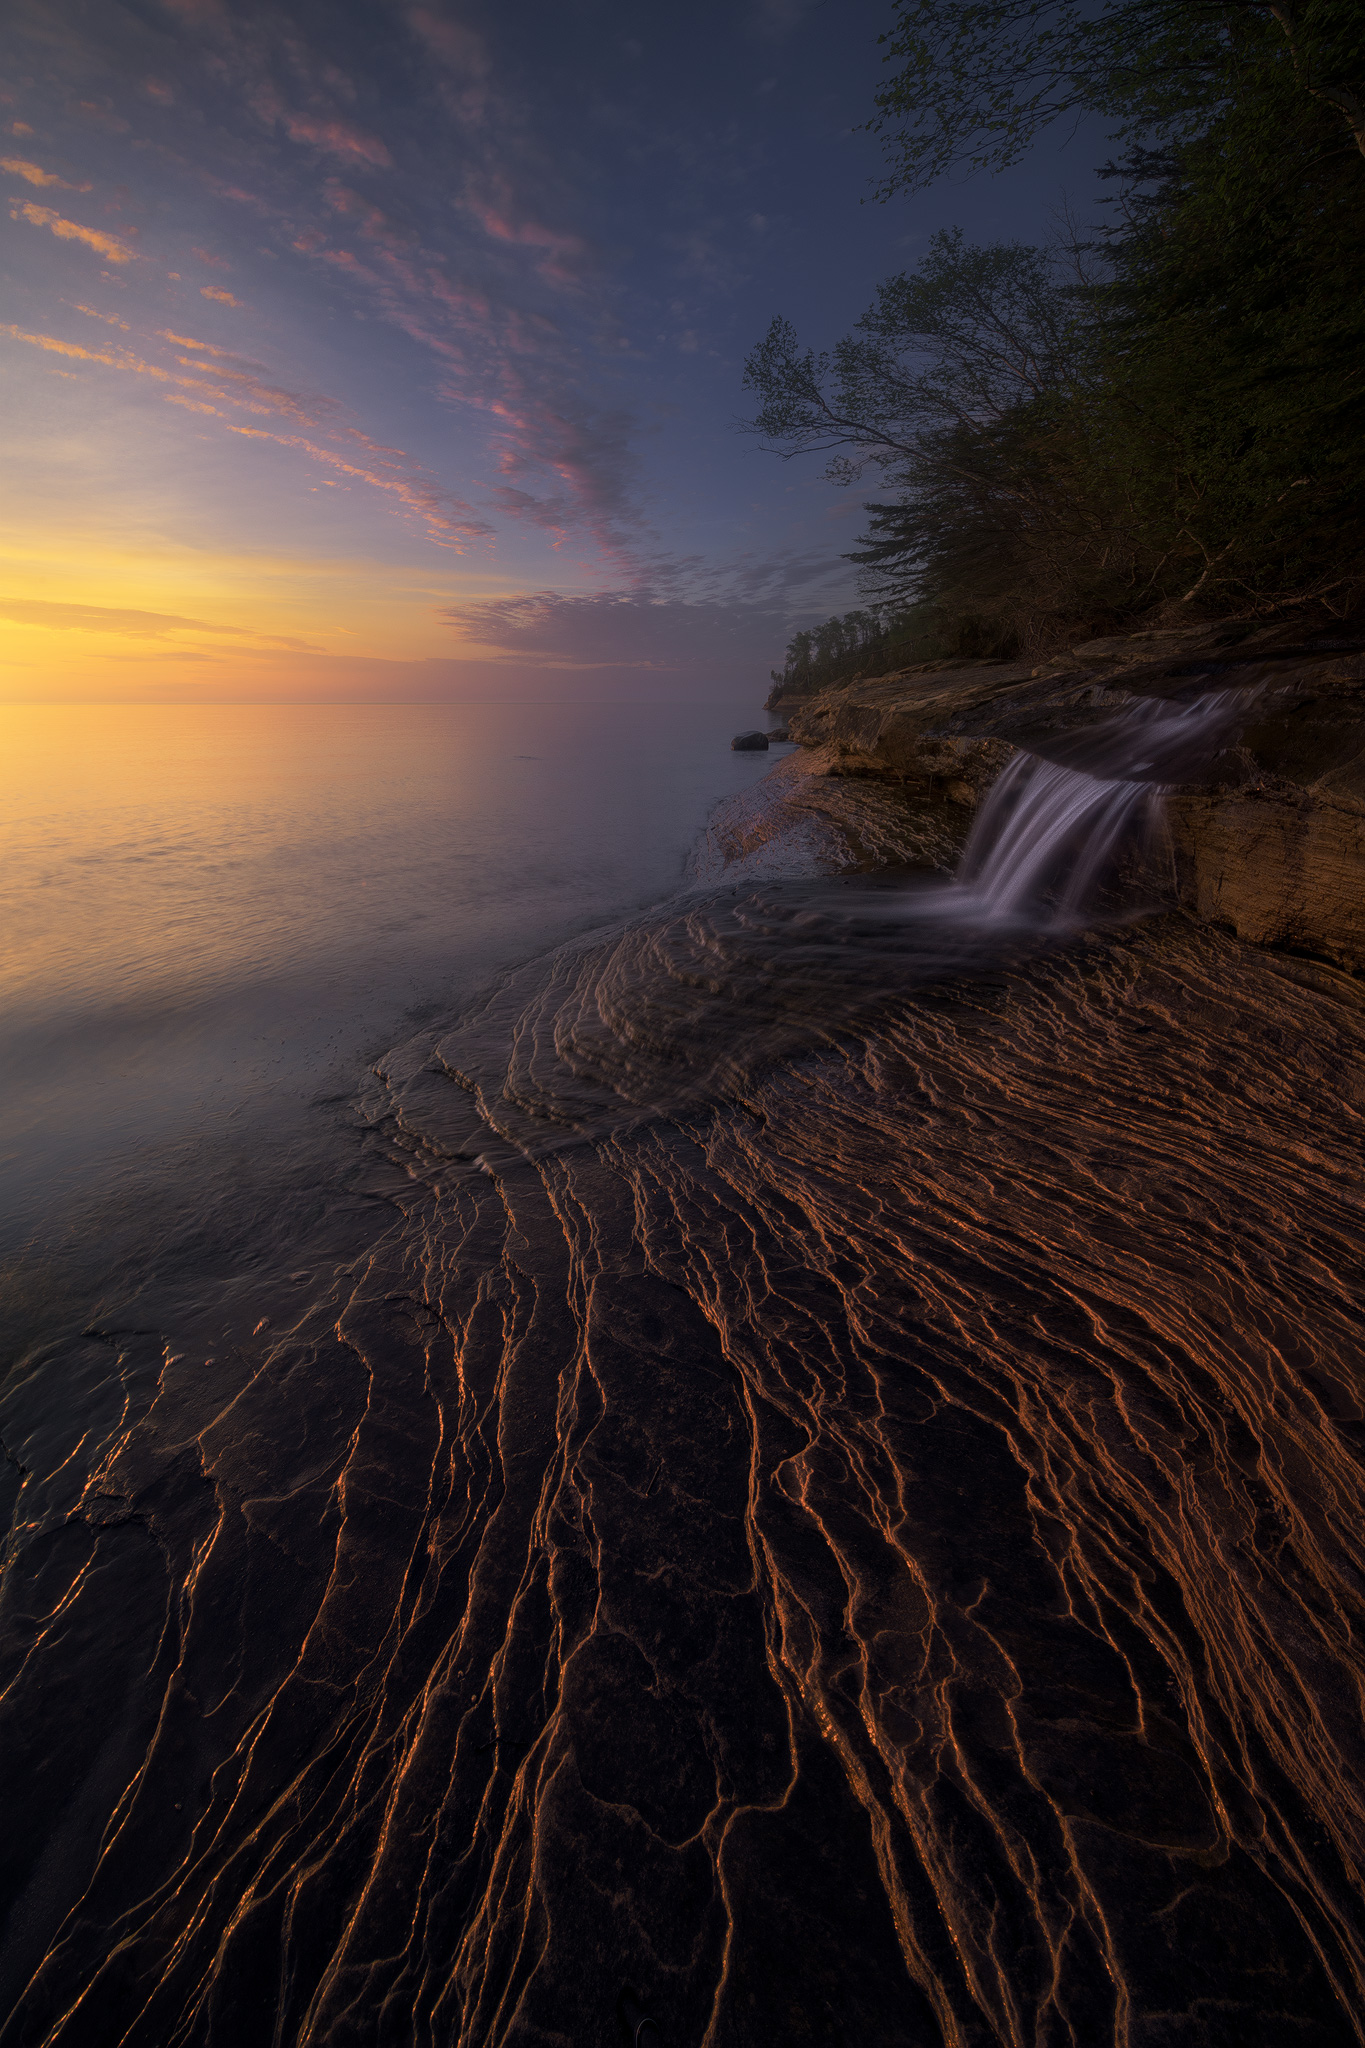 """""""Northern Reach""""    Waterfall on the shores of Lake Superior.Irix 11mm at f/16, 1 second. In this case 11mm was really helpful, as the clouds were arcing high overhead, and the prominent foreground ridges lended themselves well to the wide view, adding lots of depth to the scene. I was probably less than 10 feet from the waterfall!"""